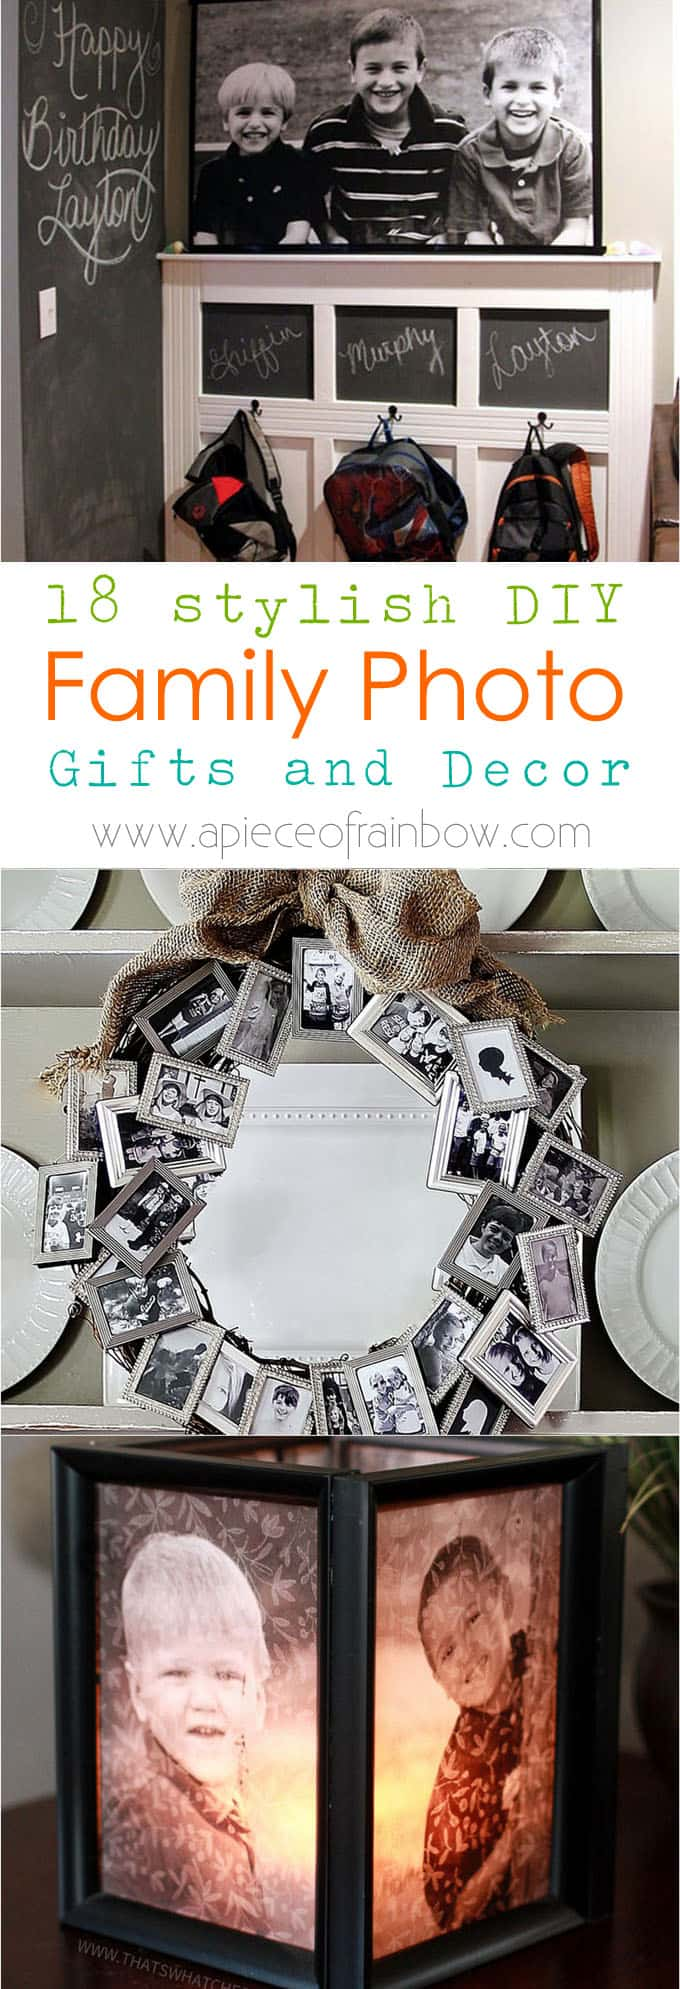 18-family-photos-gifts-decor-apieceofrainbowblog-1